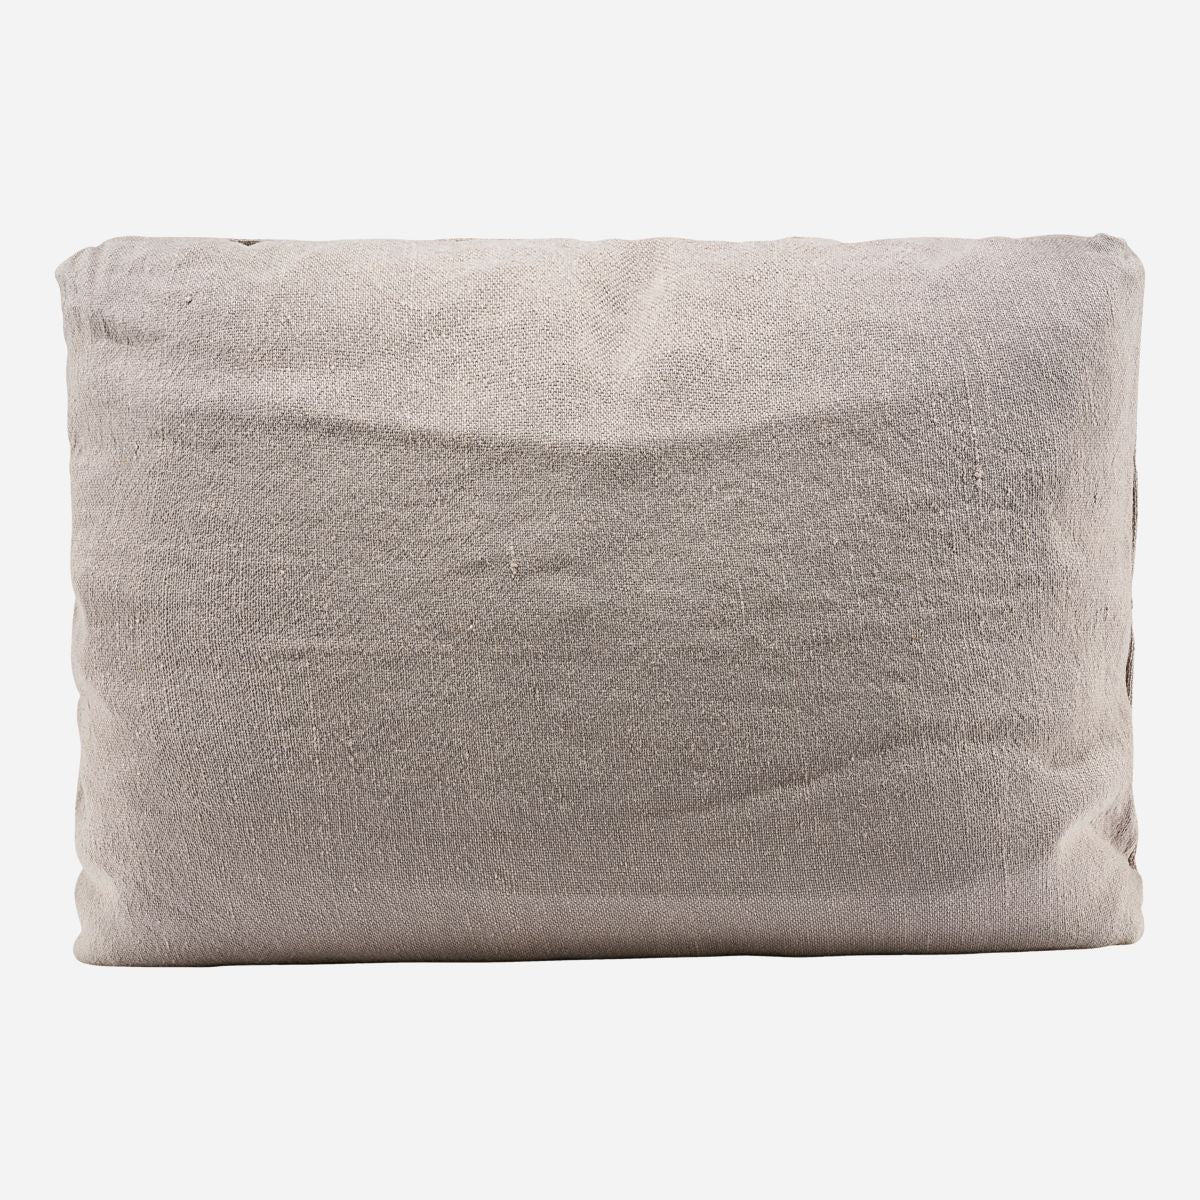 Image of   Chair pad, Alba, Light grey, (pillow: 203016080)